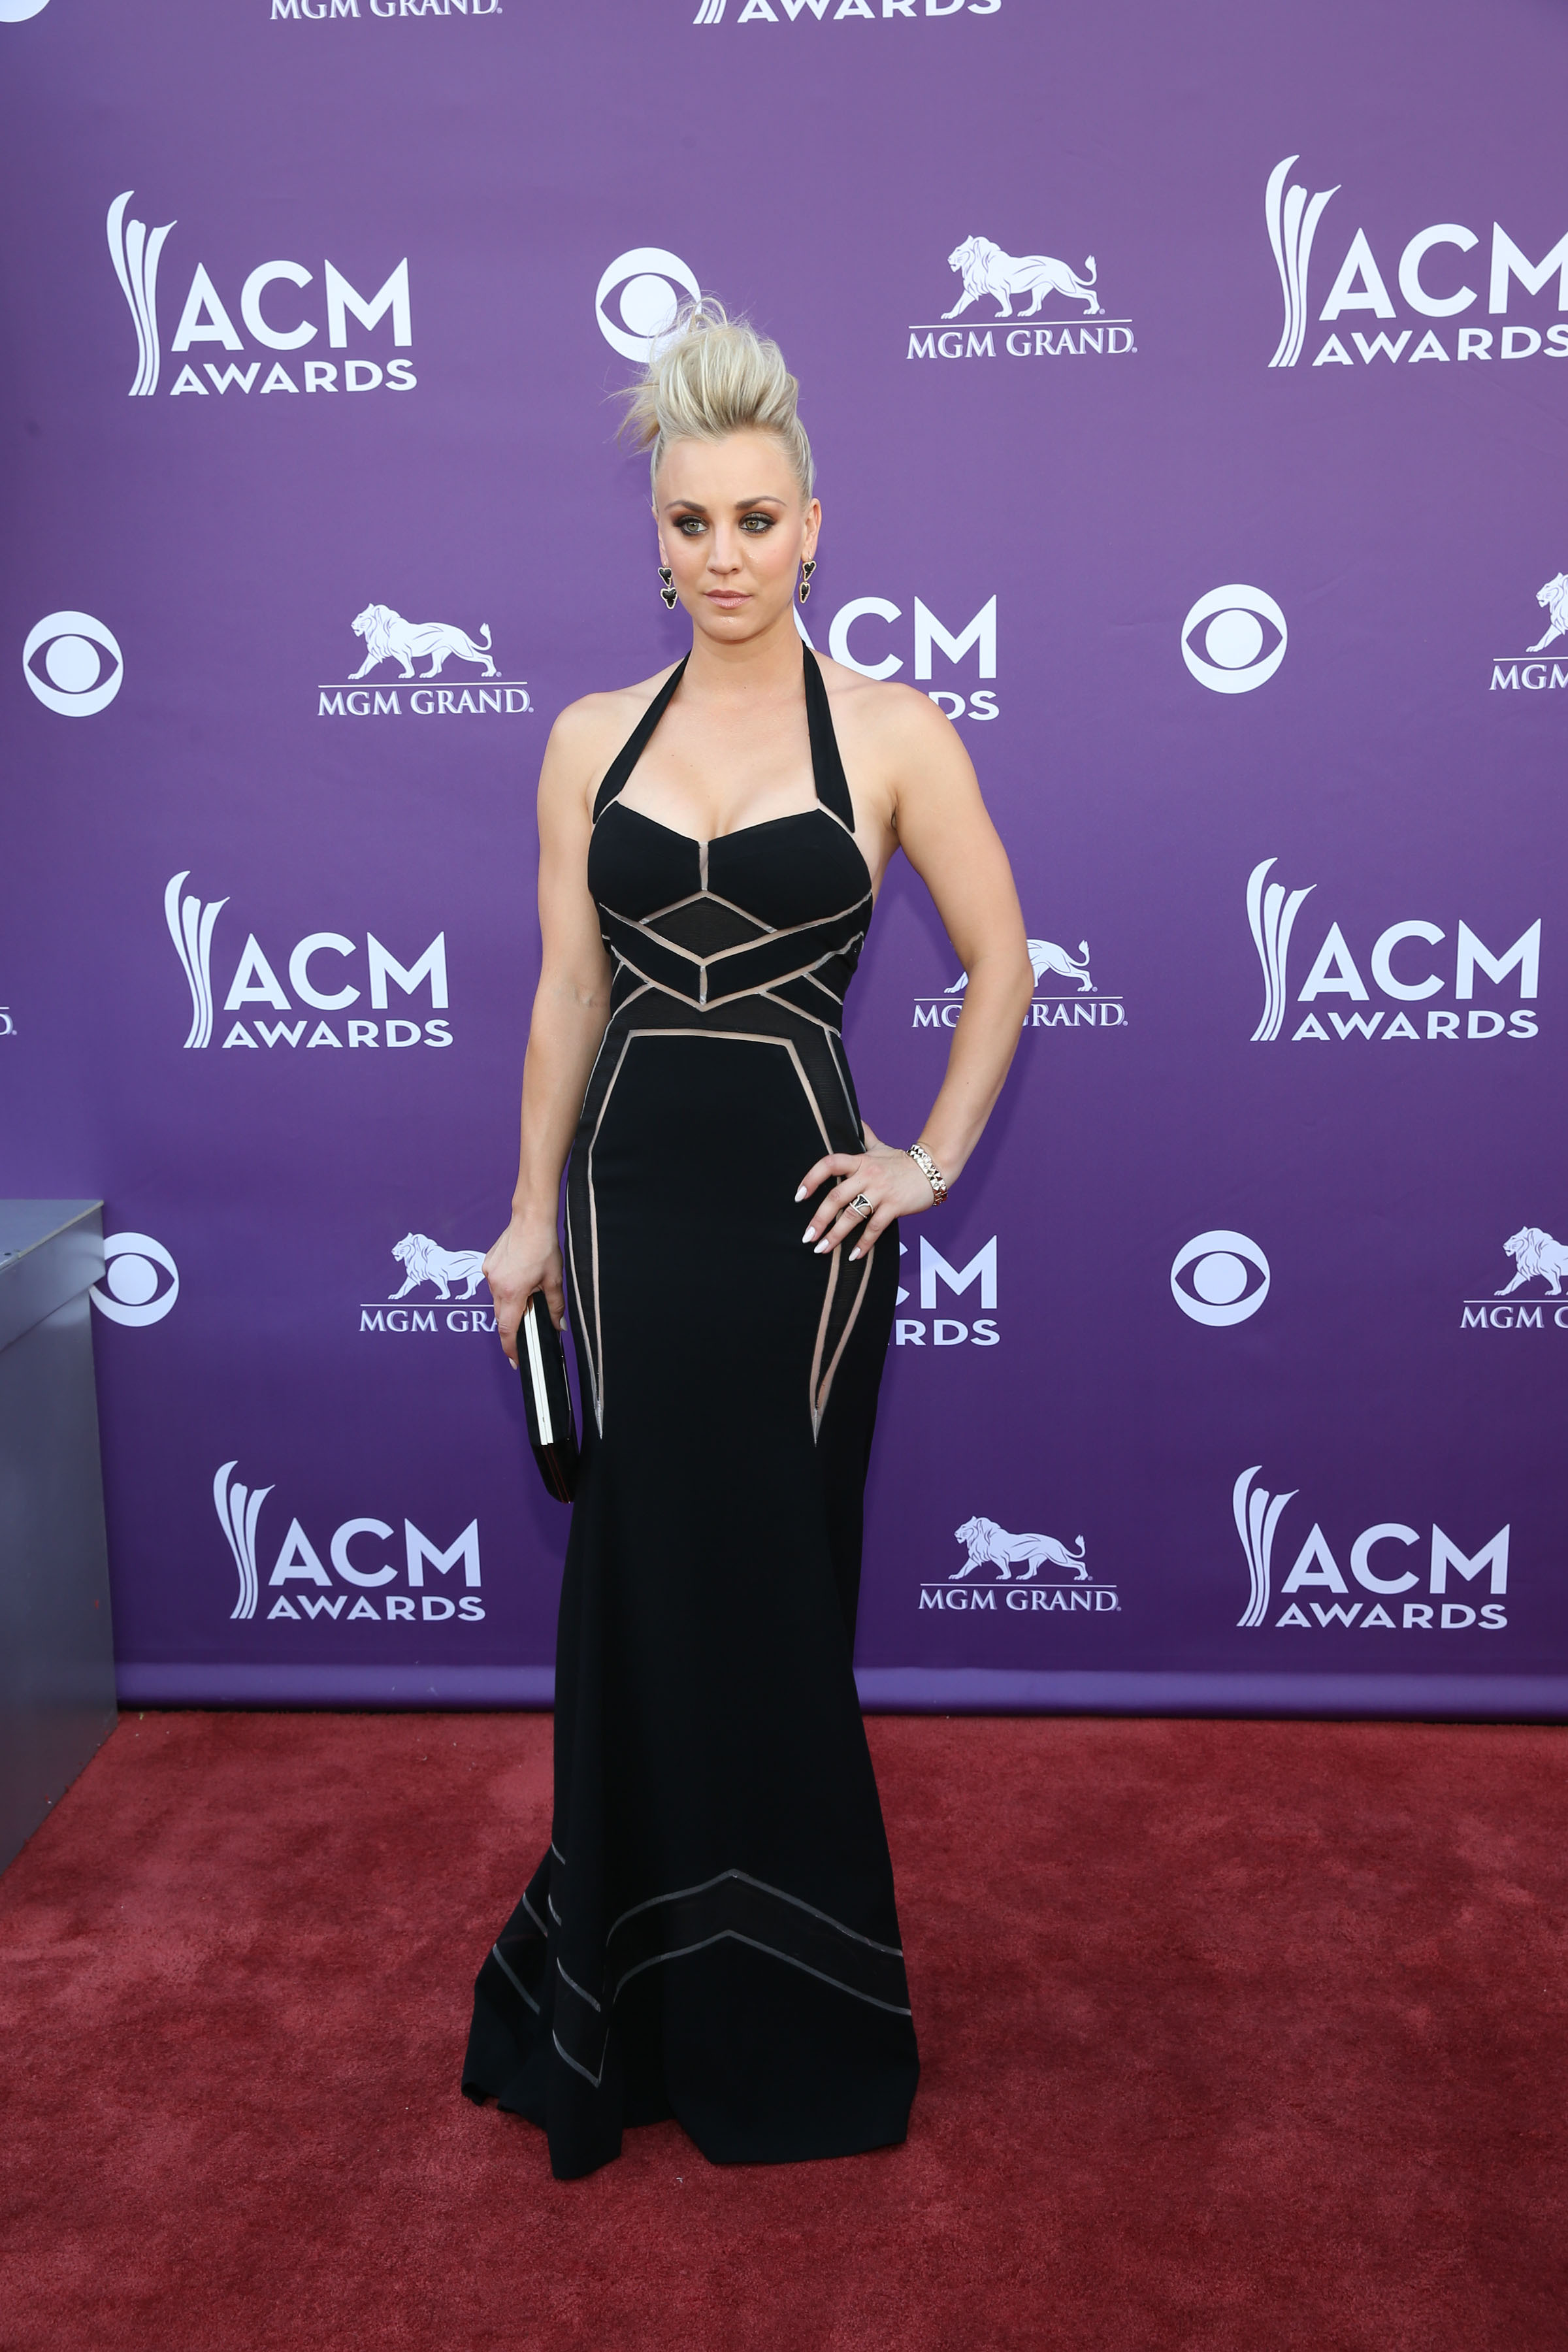 703354862_Kaley_Cuoco_48th_Annual_Academy_Country_Music_Awards7_122_568lo.jpg